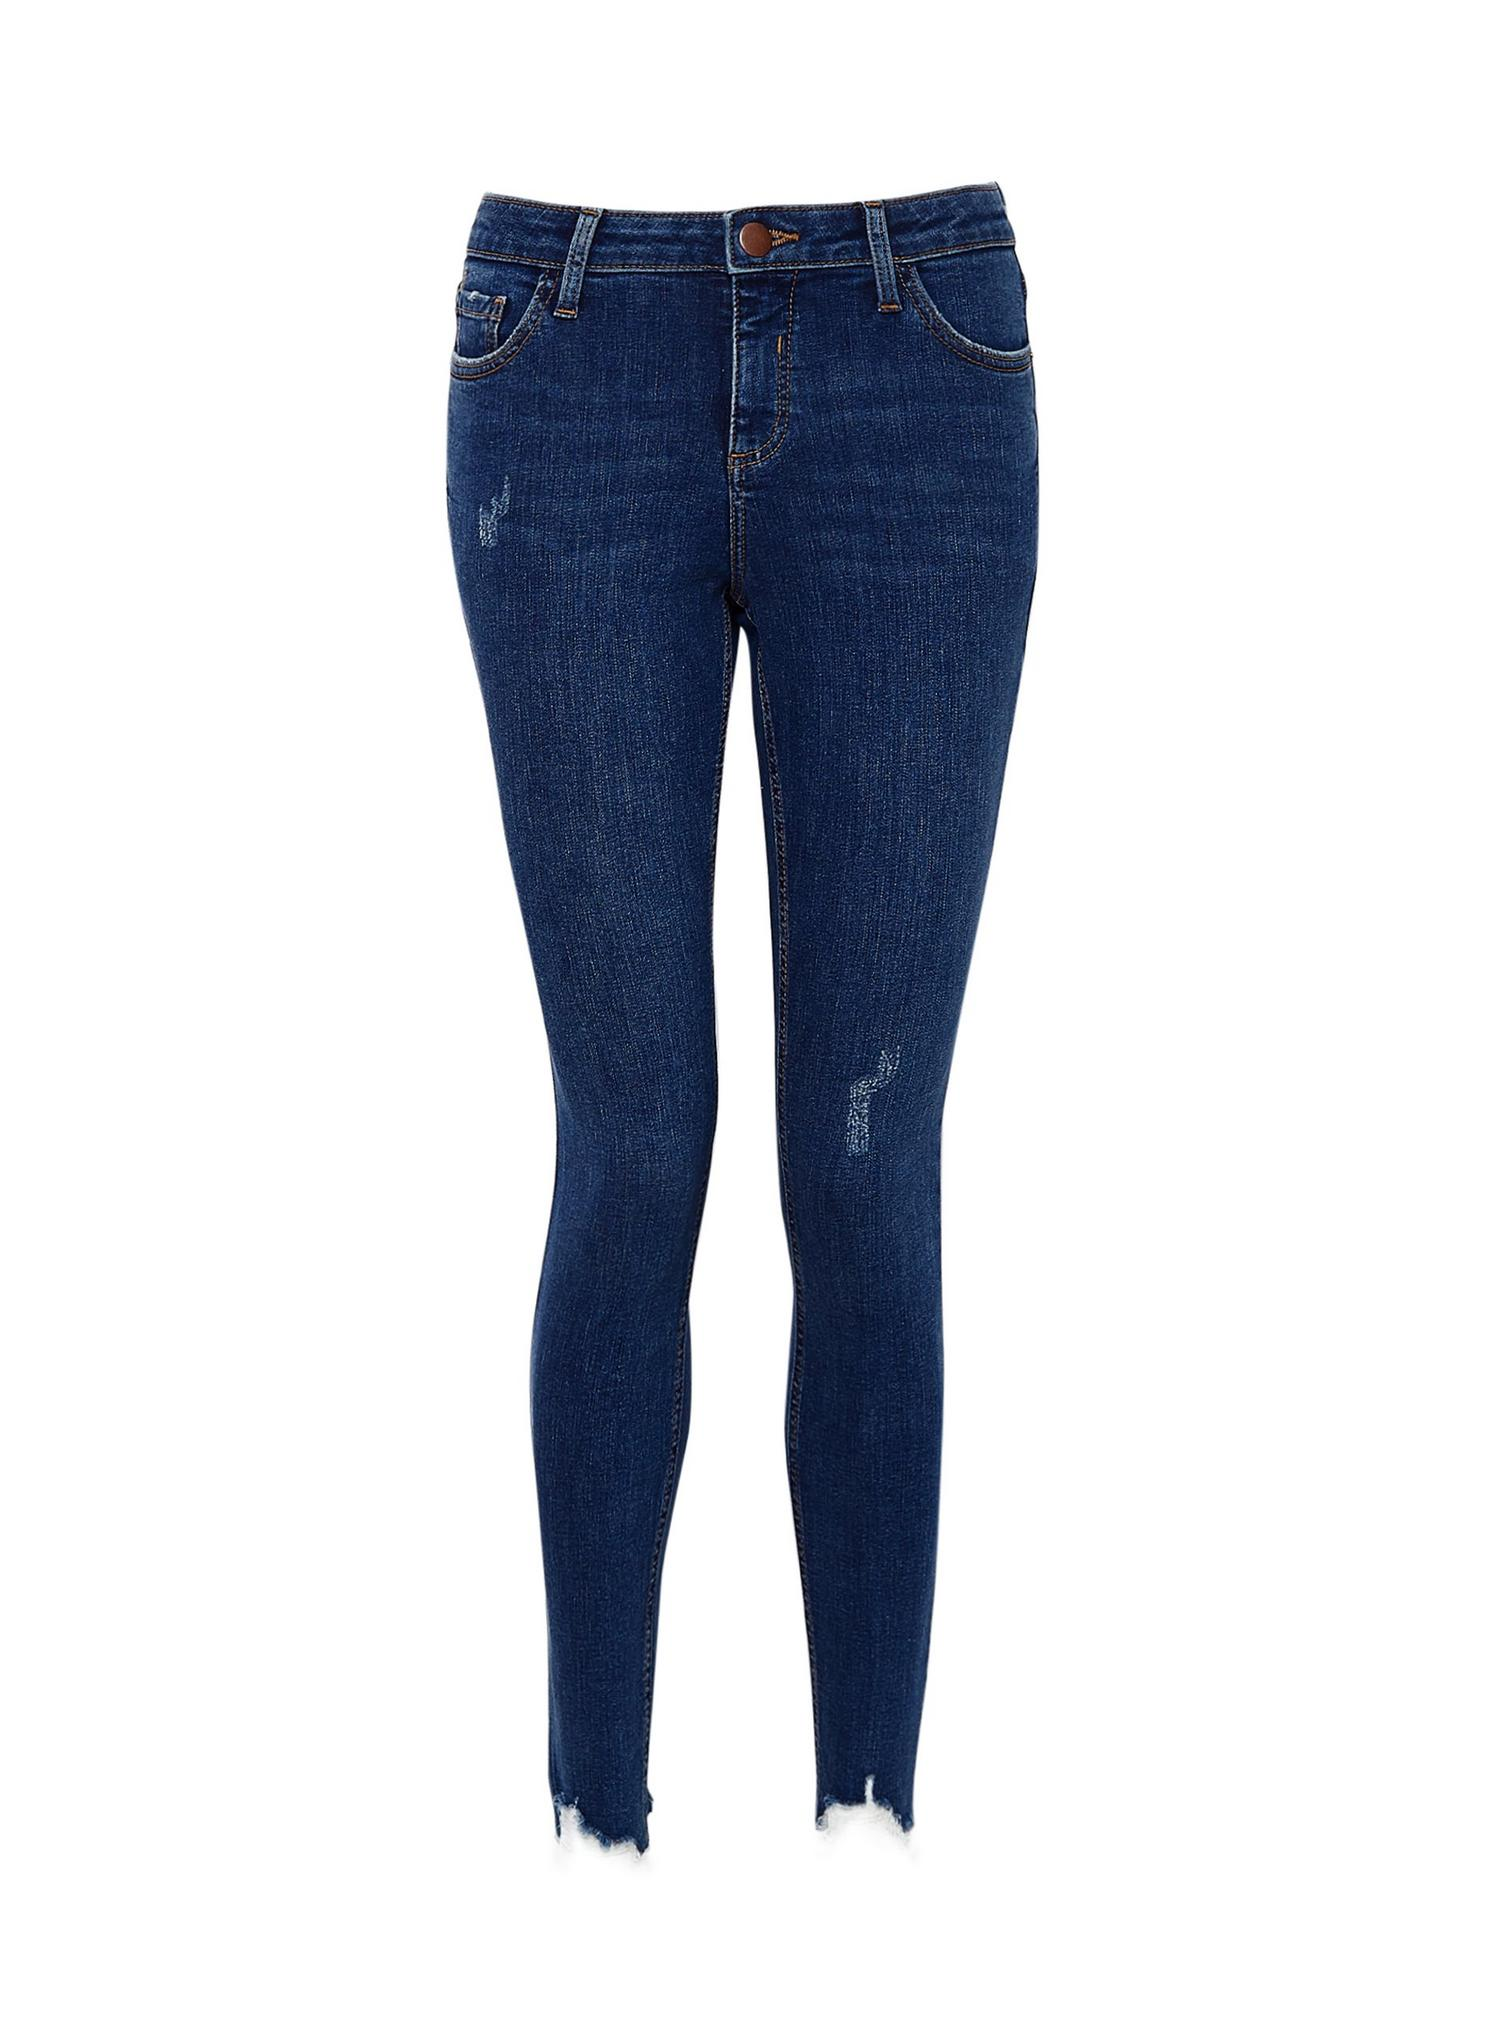 132 Organic Indigo Regular Nibble Darcy Jeans image number 4